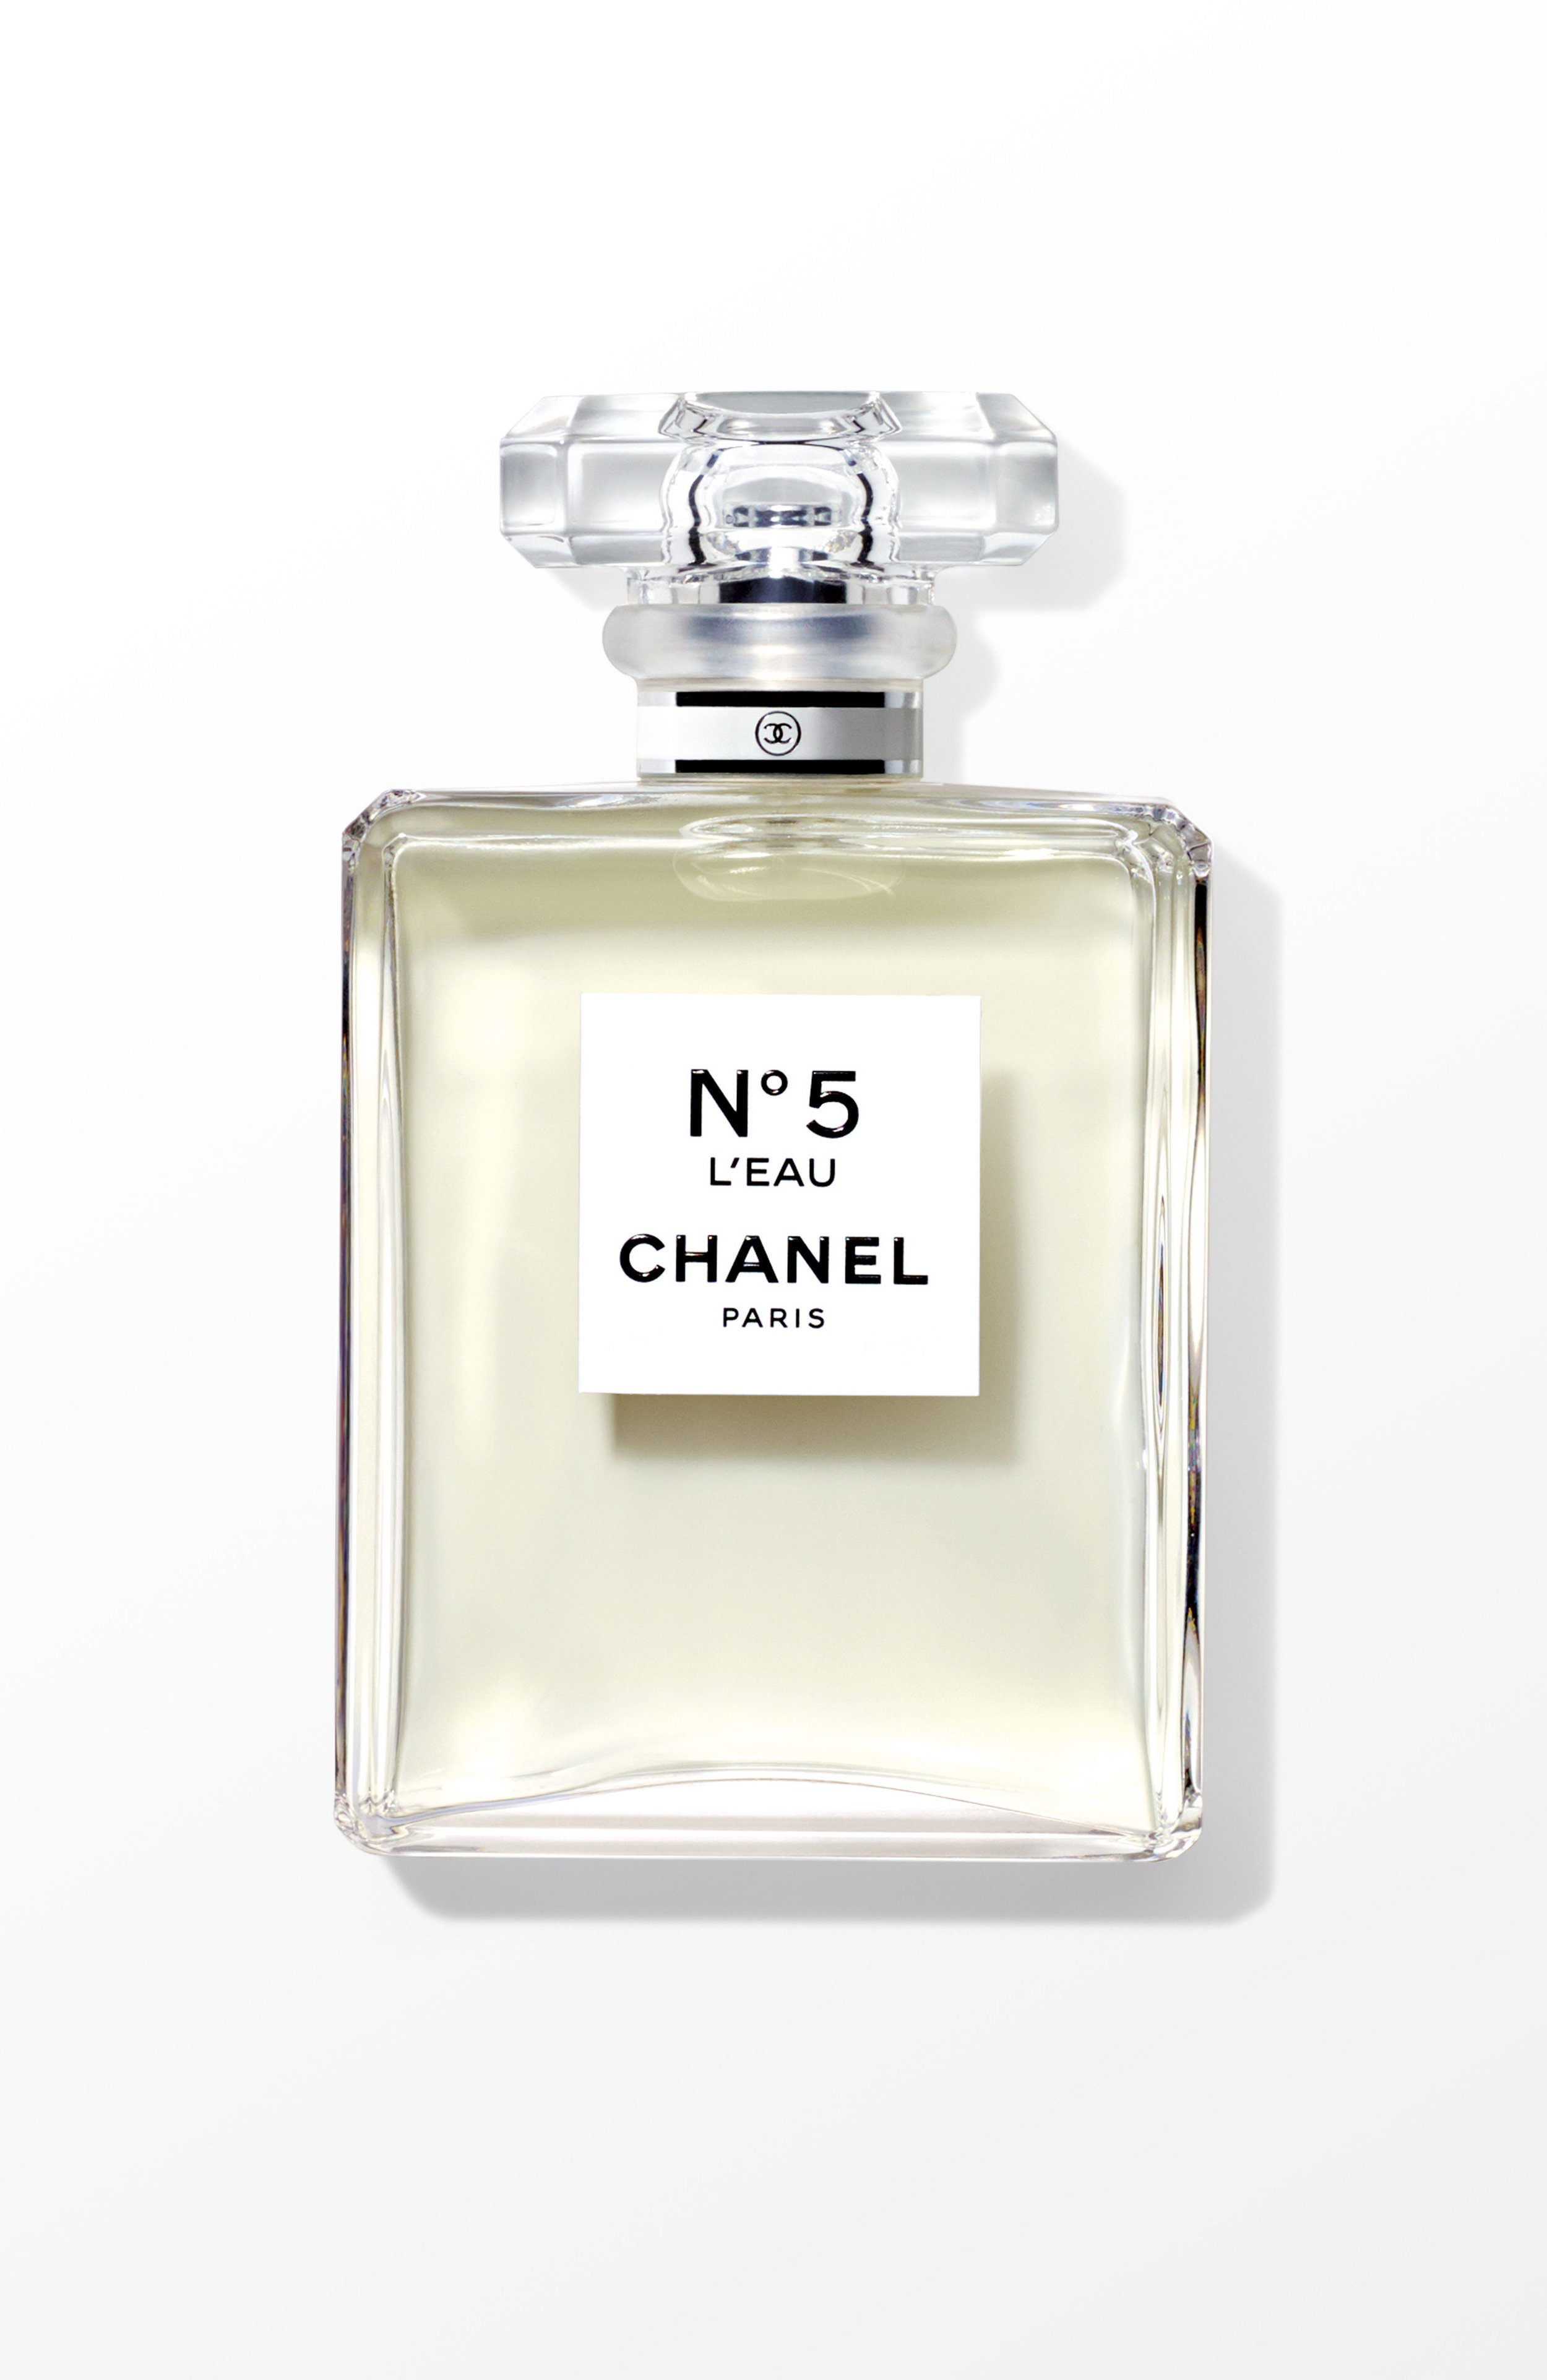 Chanel N°5 L'Eau by CHANEL